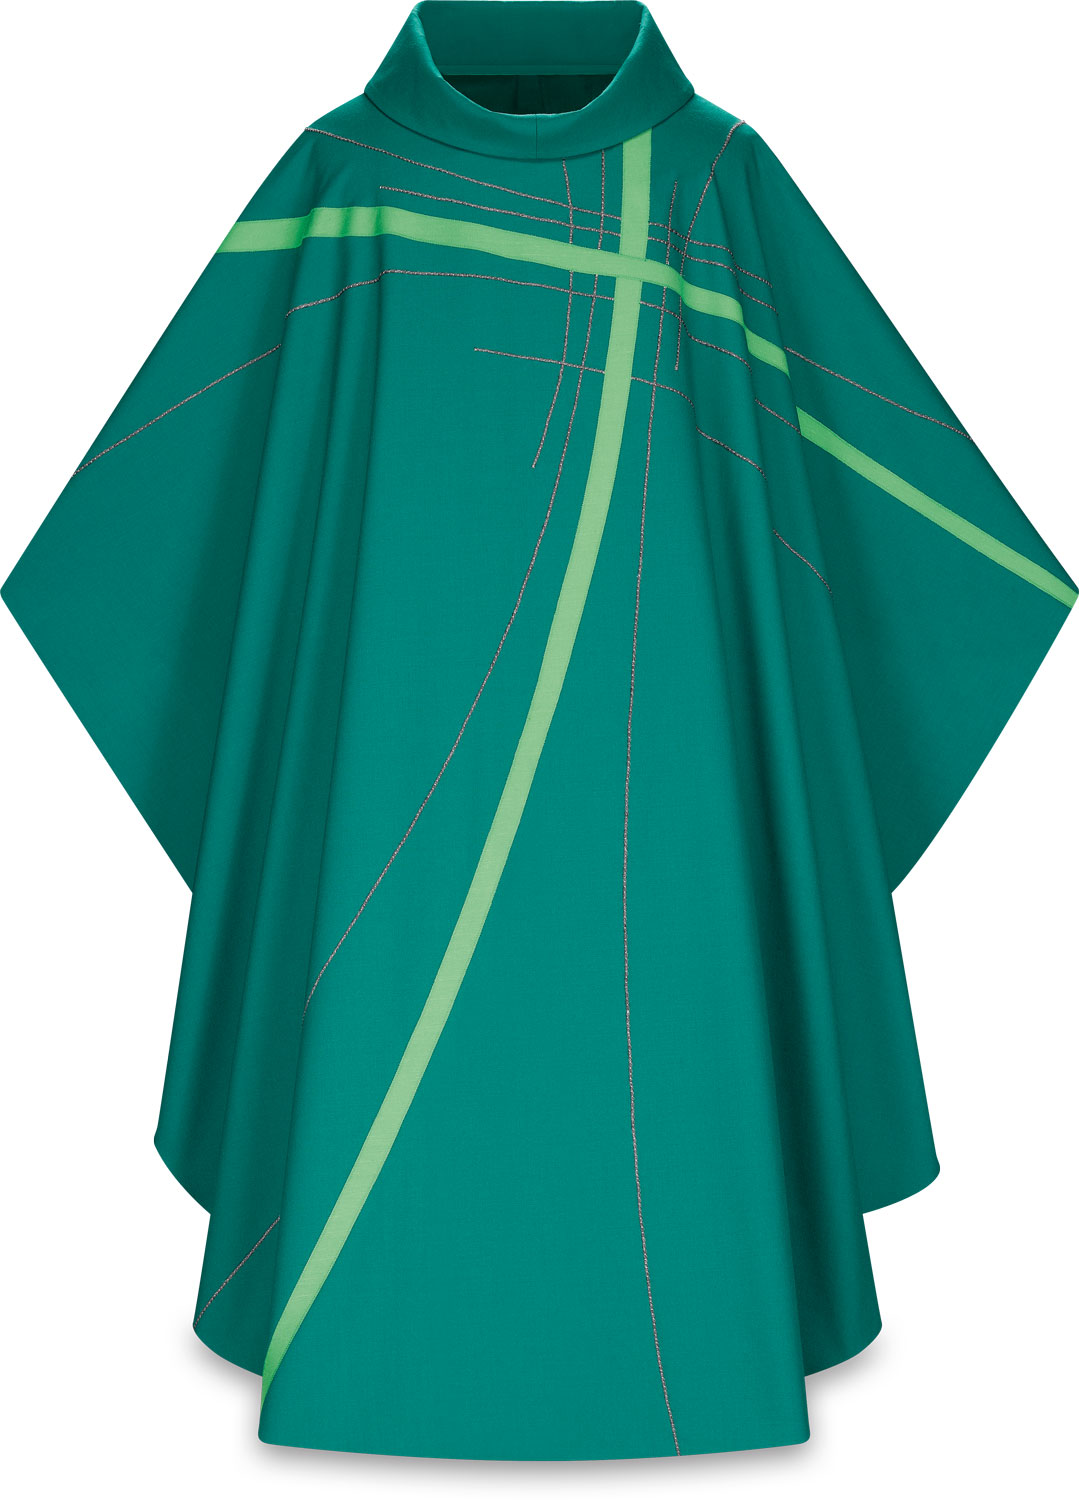 Chasuble | Green | 5226 | Slabbinck